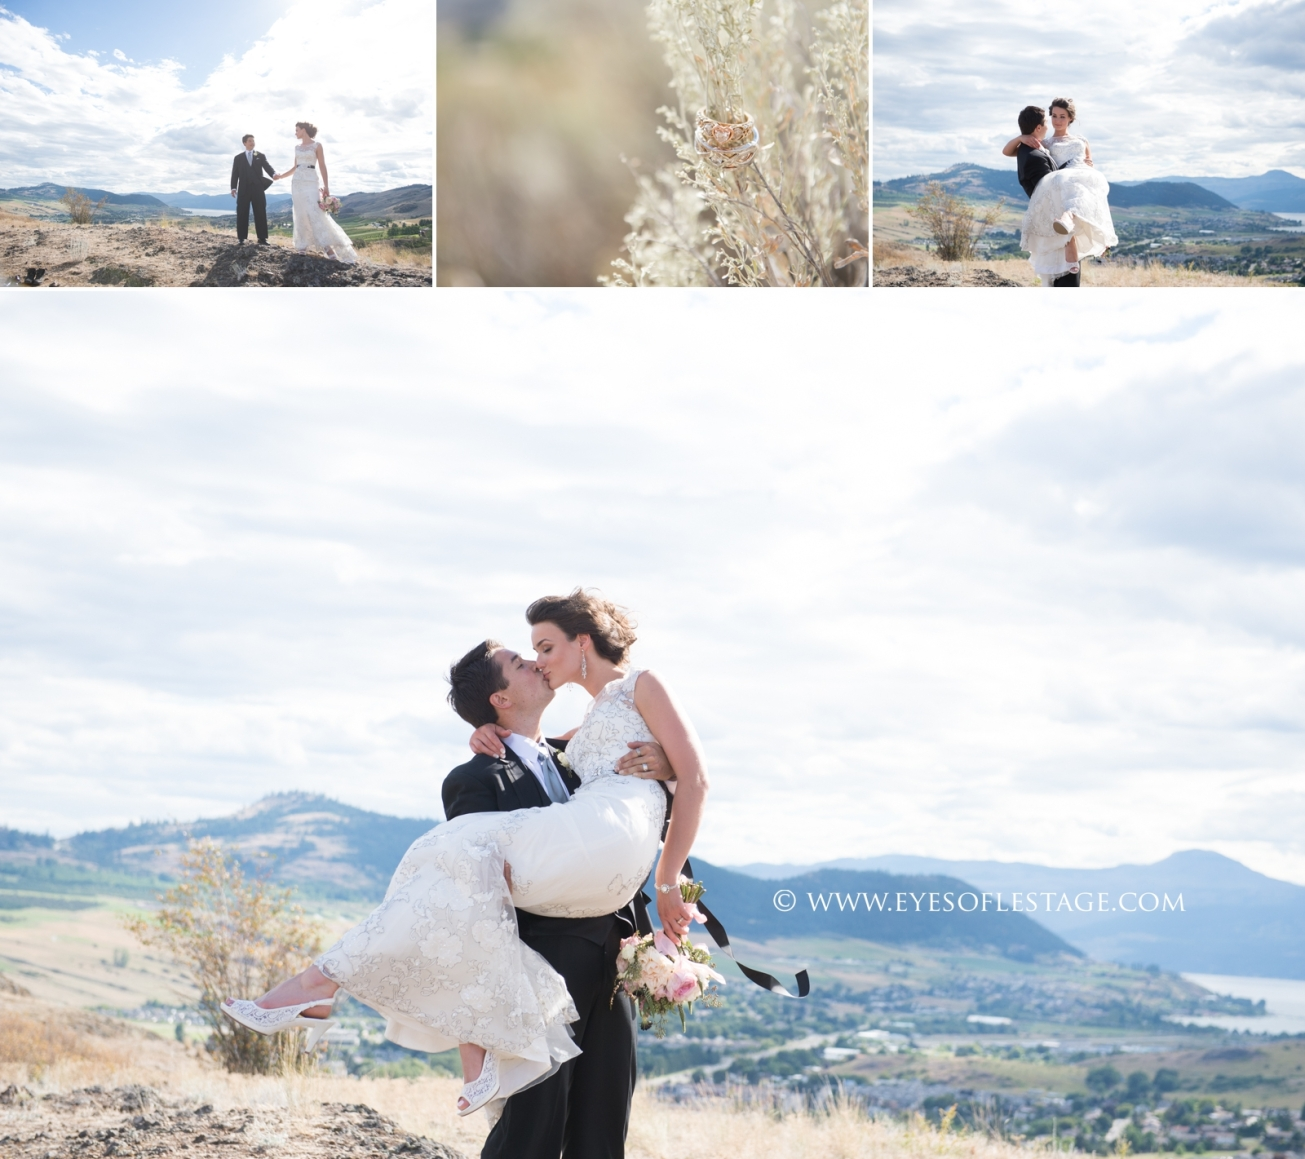 Kelowna Vernon Wedding Photography - Suzanne Le Stage - Durali Villa 11